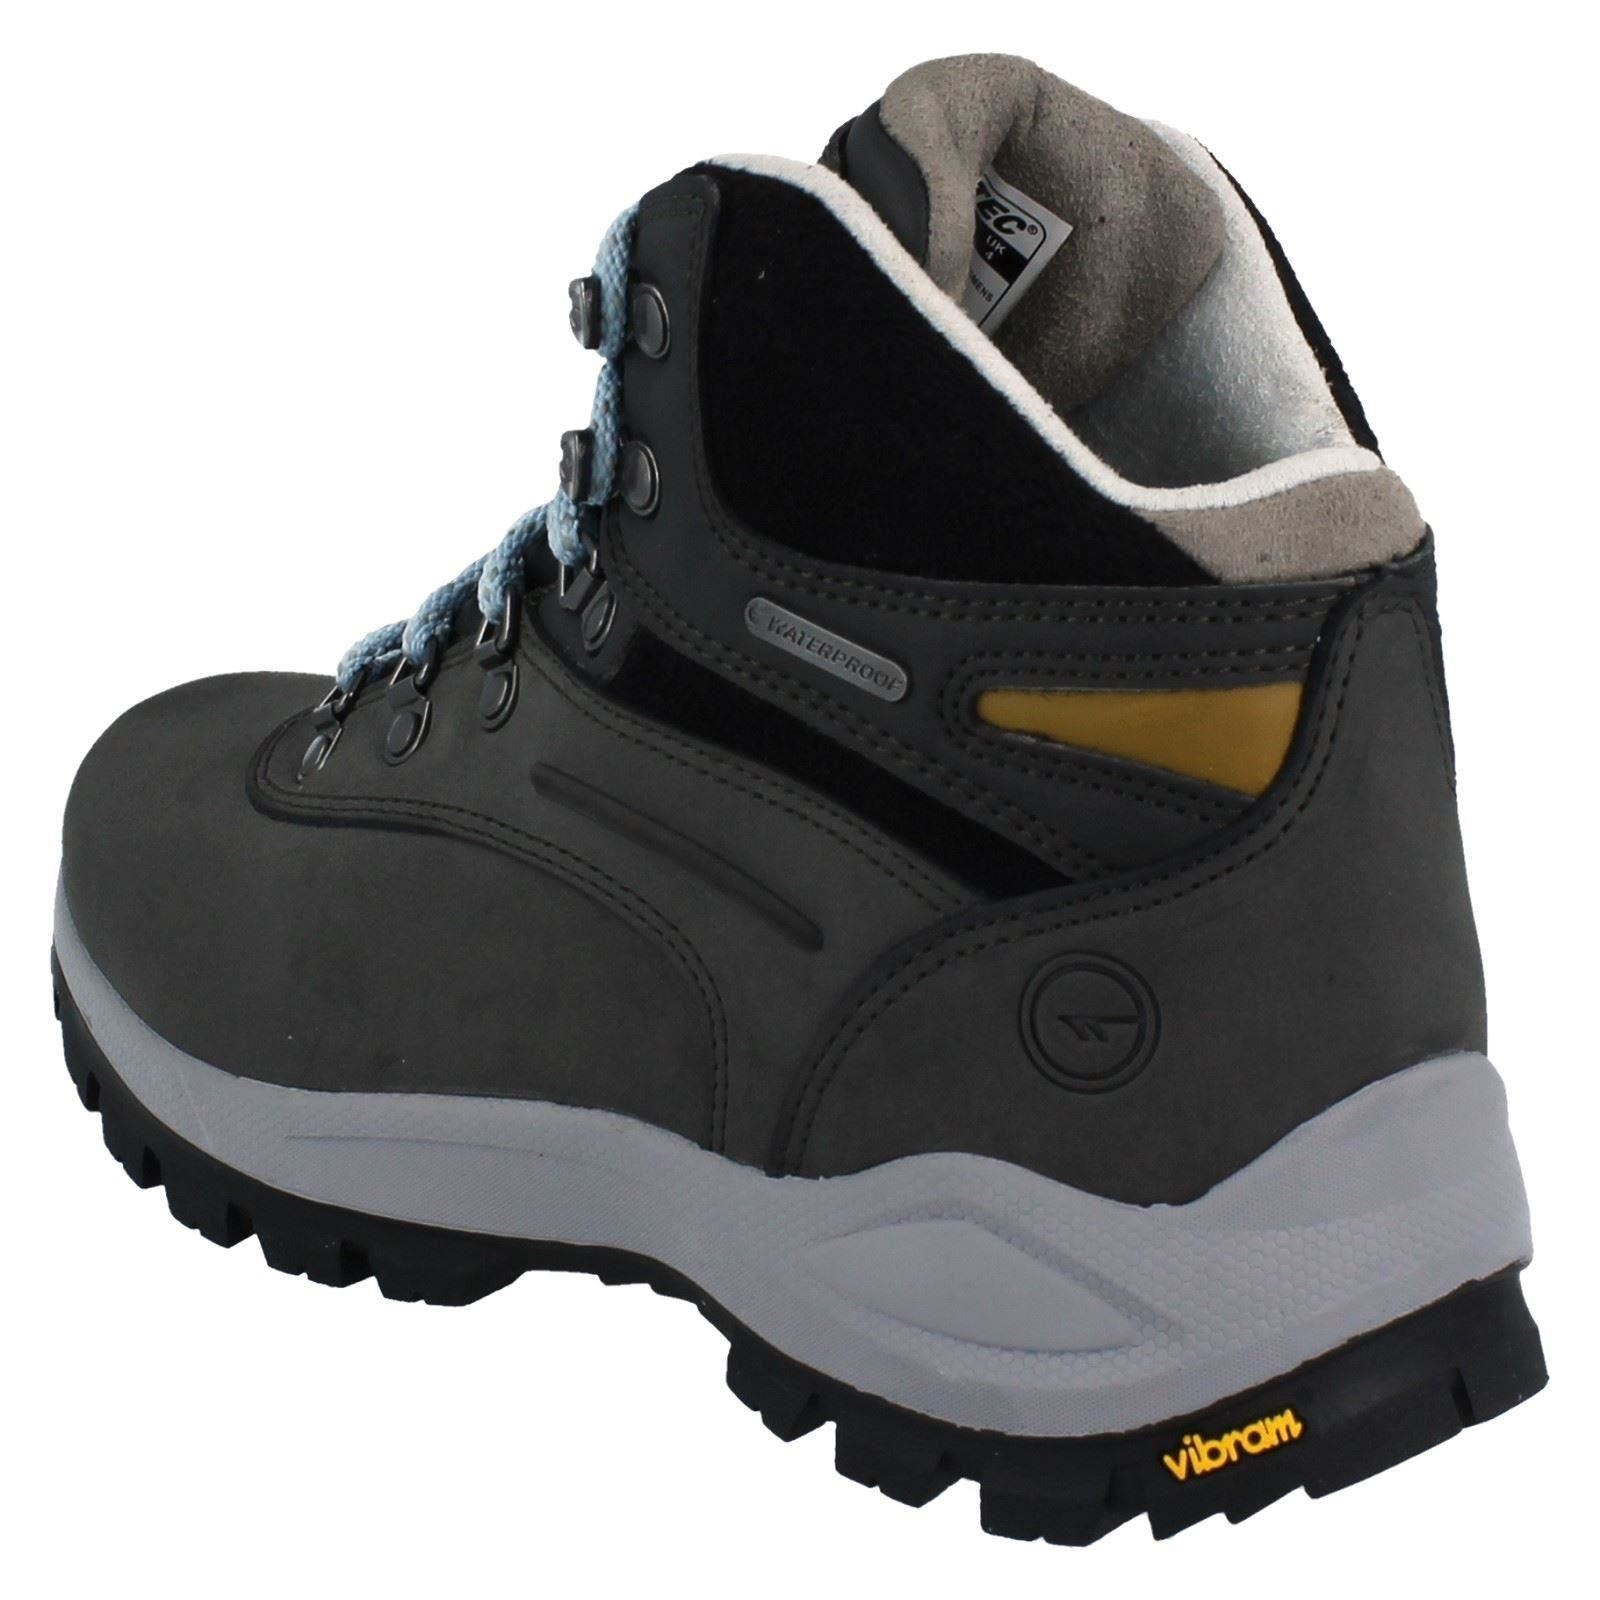 Hi-Tec Ladies Waterproof Walking Boots - Altitude Alpyna I WP Womens Charcoal/Forget Me Not (Grey)